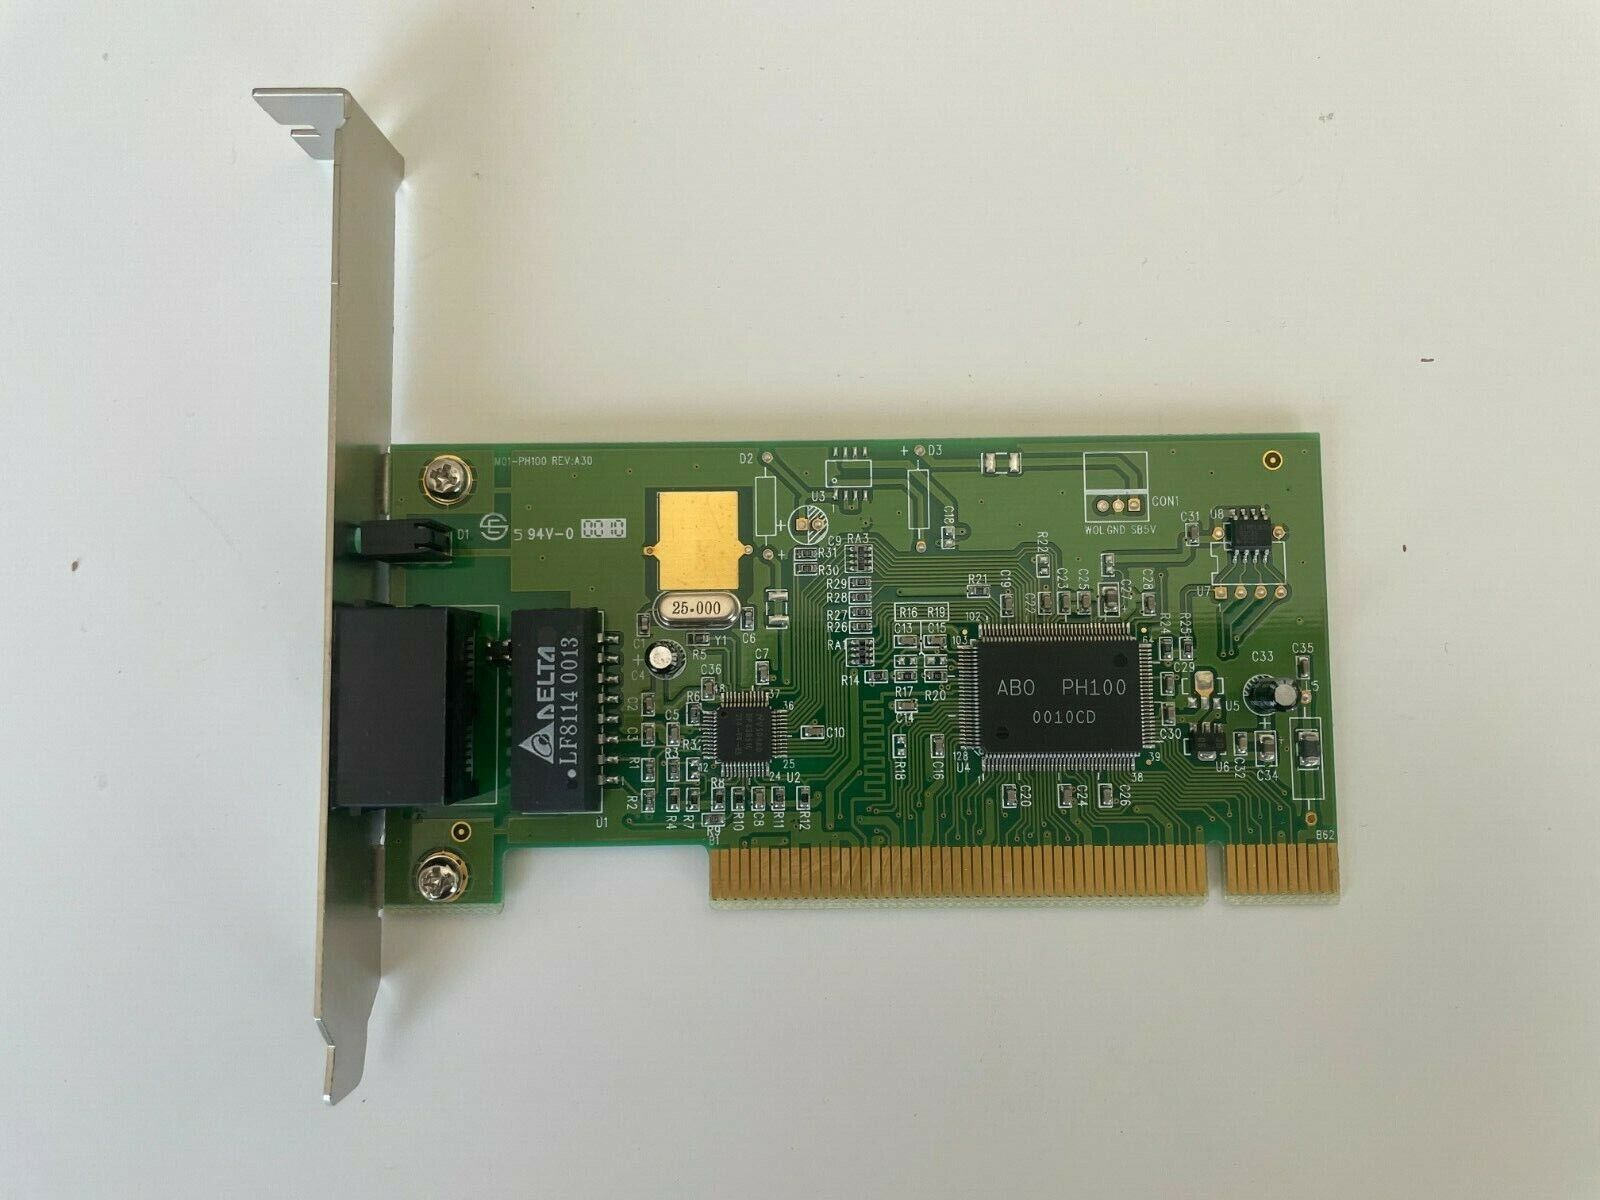 ABO Chipset Networking PCI Slot 10/100 Card